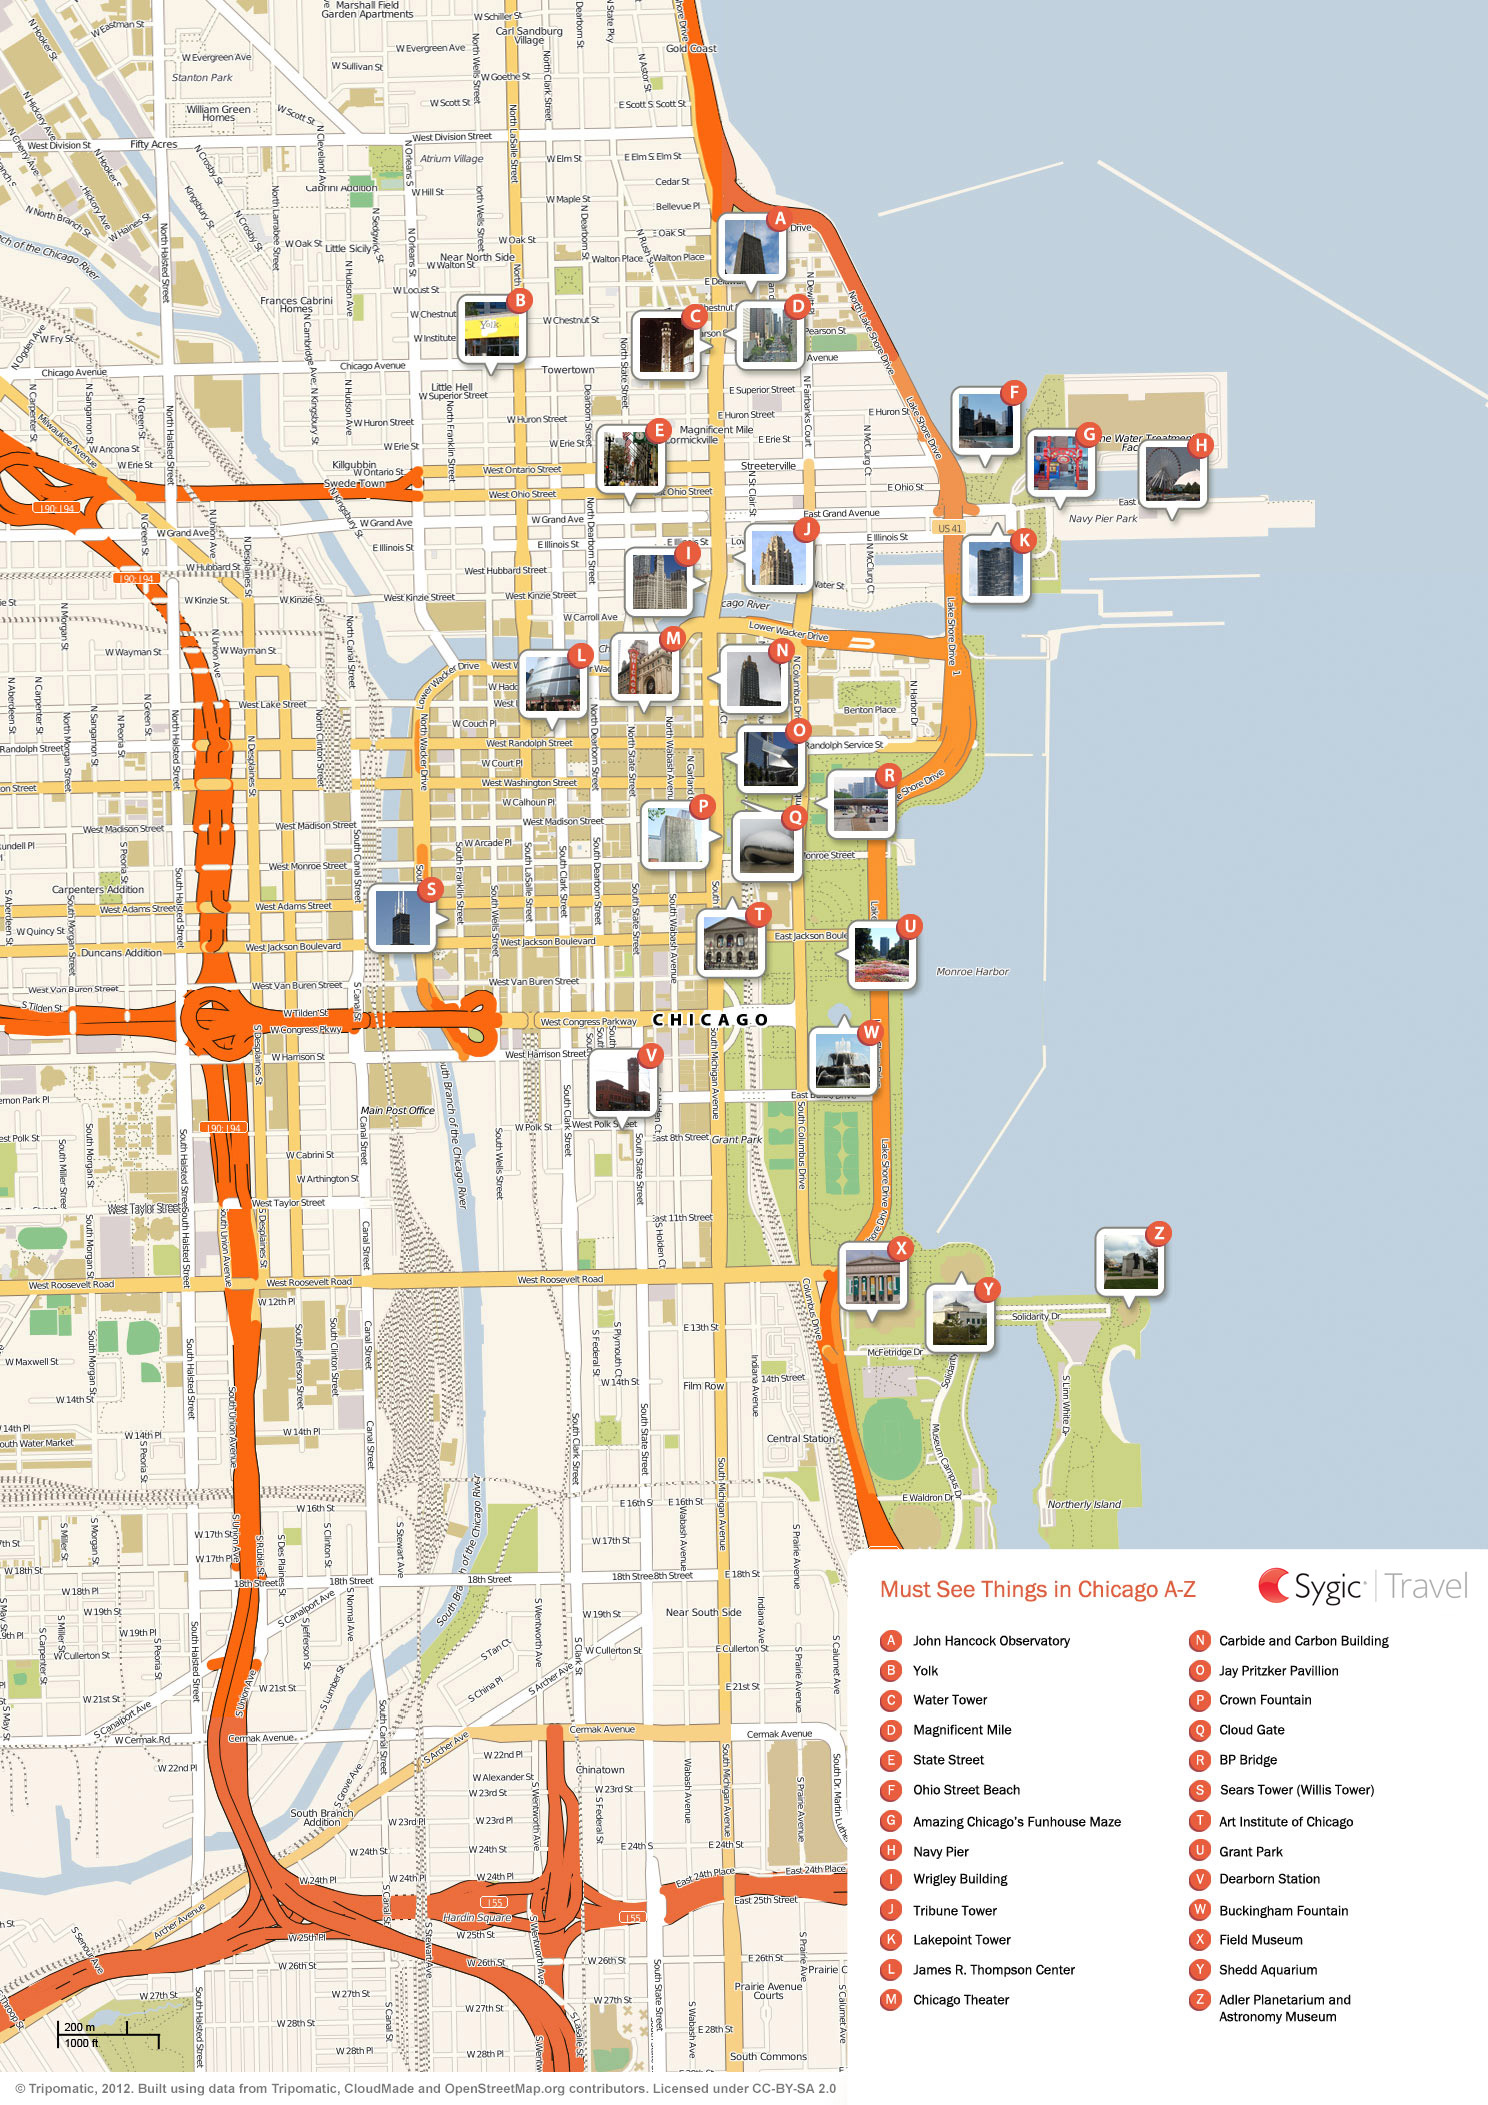 Chicago Printable Tourist Map – Map Of Rome Tourist Attractions